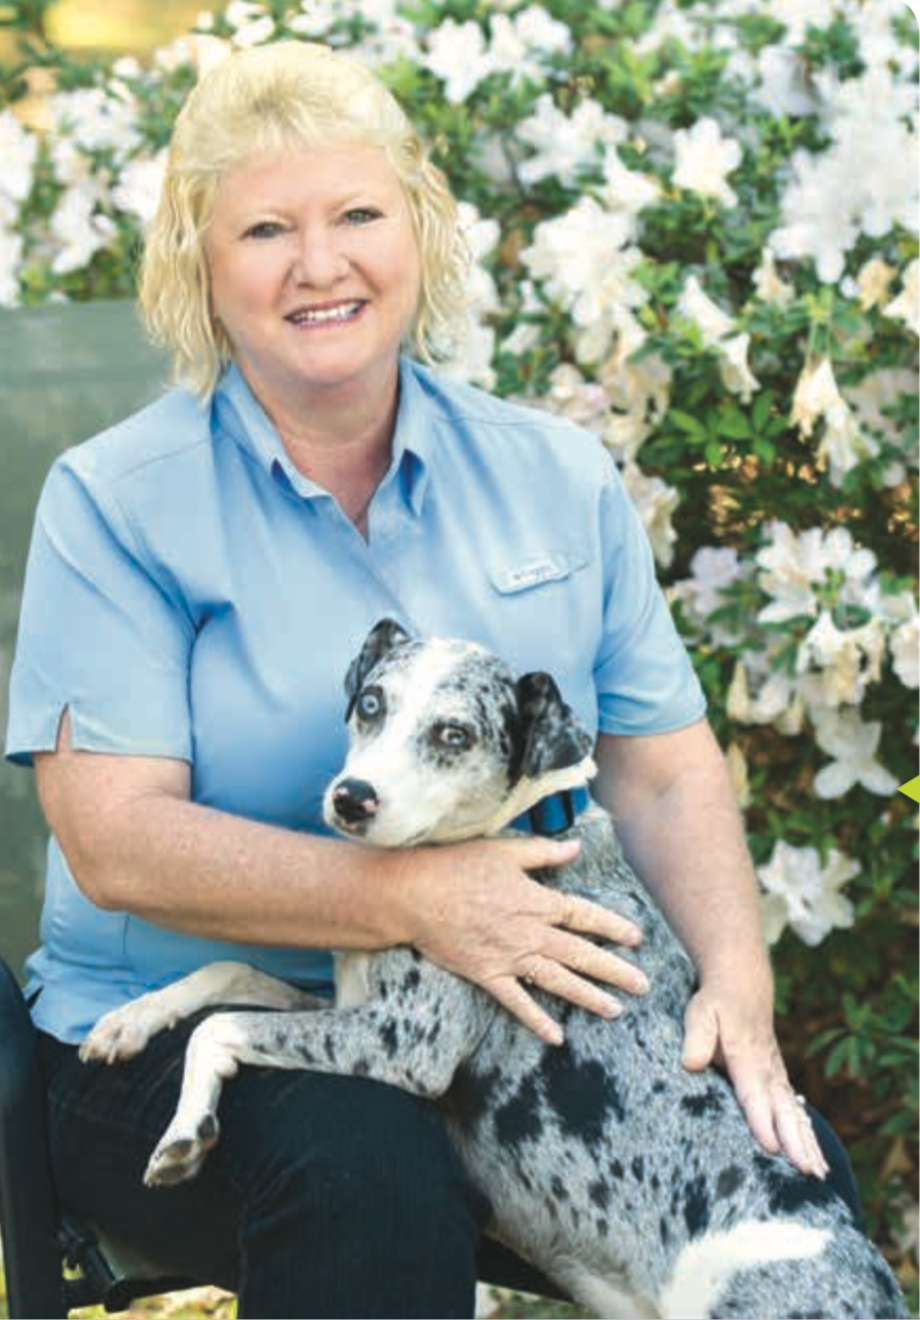 Once again able to walk her dog every day, Patty Lealy is enjoying life.